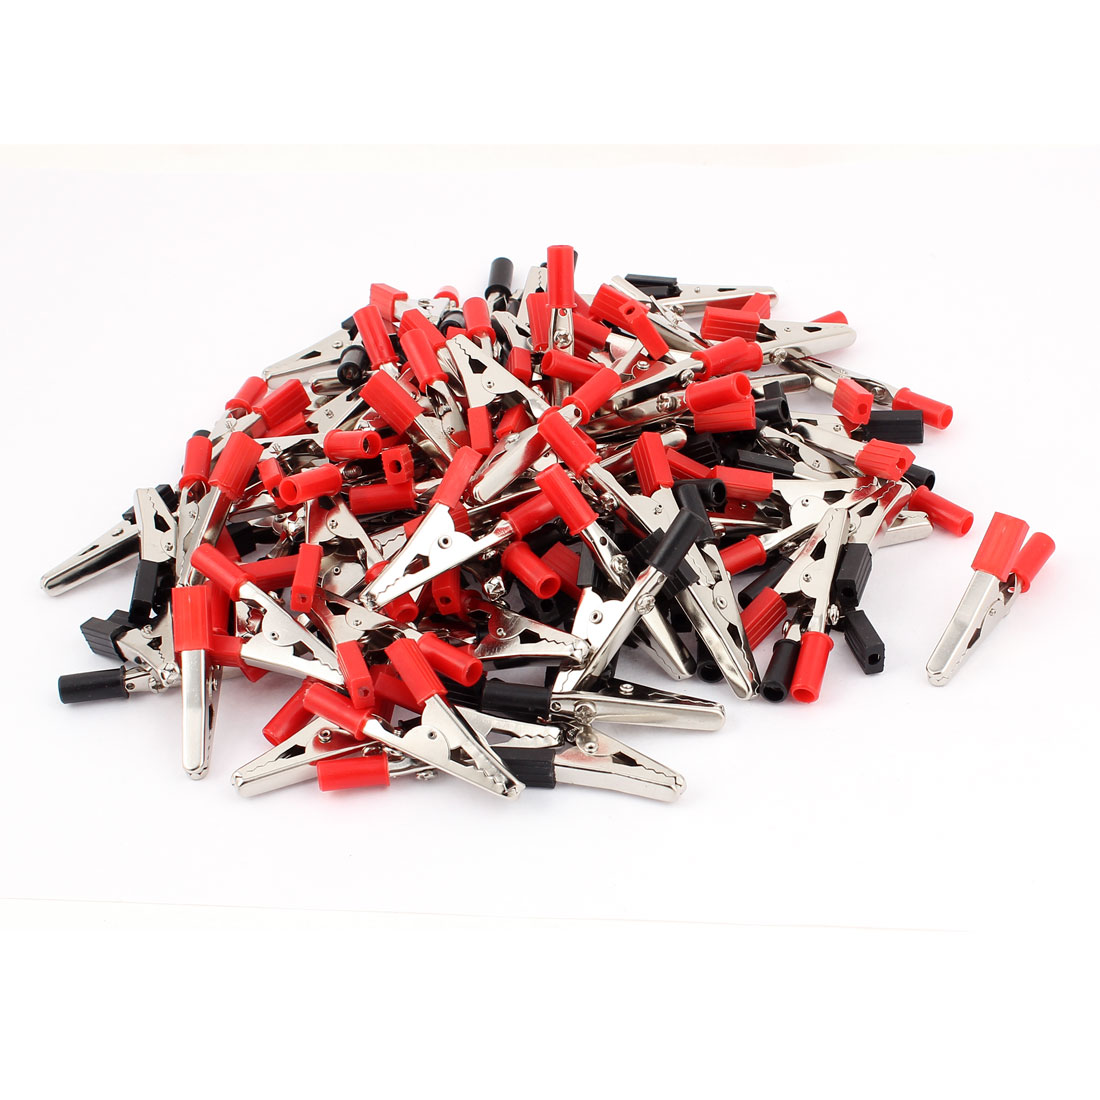 029 100 Pcs 55mm Lenght Alligator Clip Clamp Test Testing Probe Black & Red